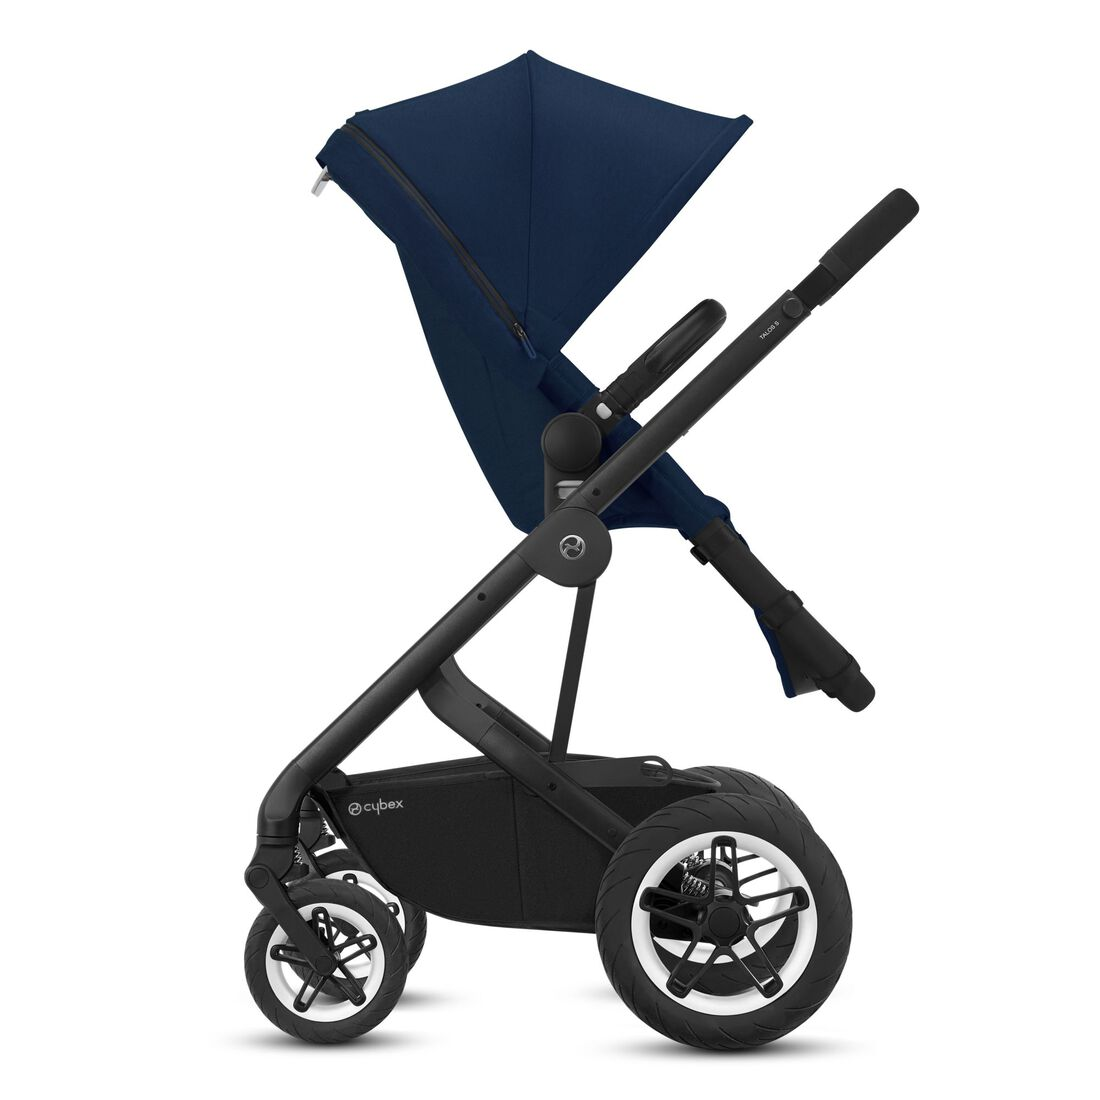 CYBEX Talos S 2-in-1 - Navy Blue in Navy Blue large image number 3